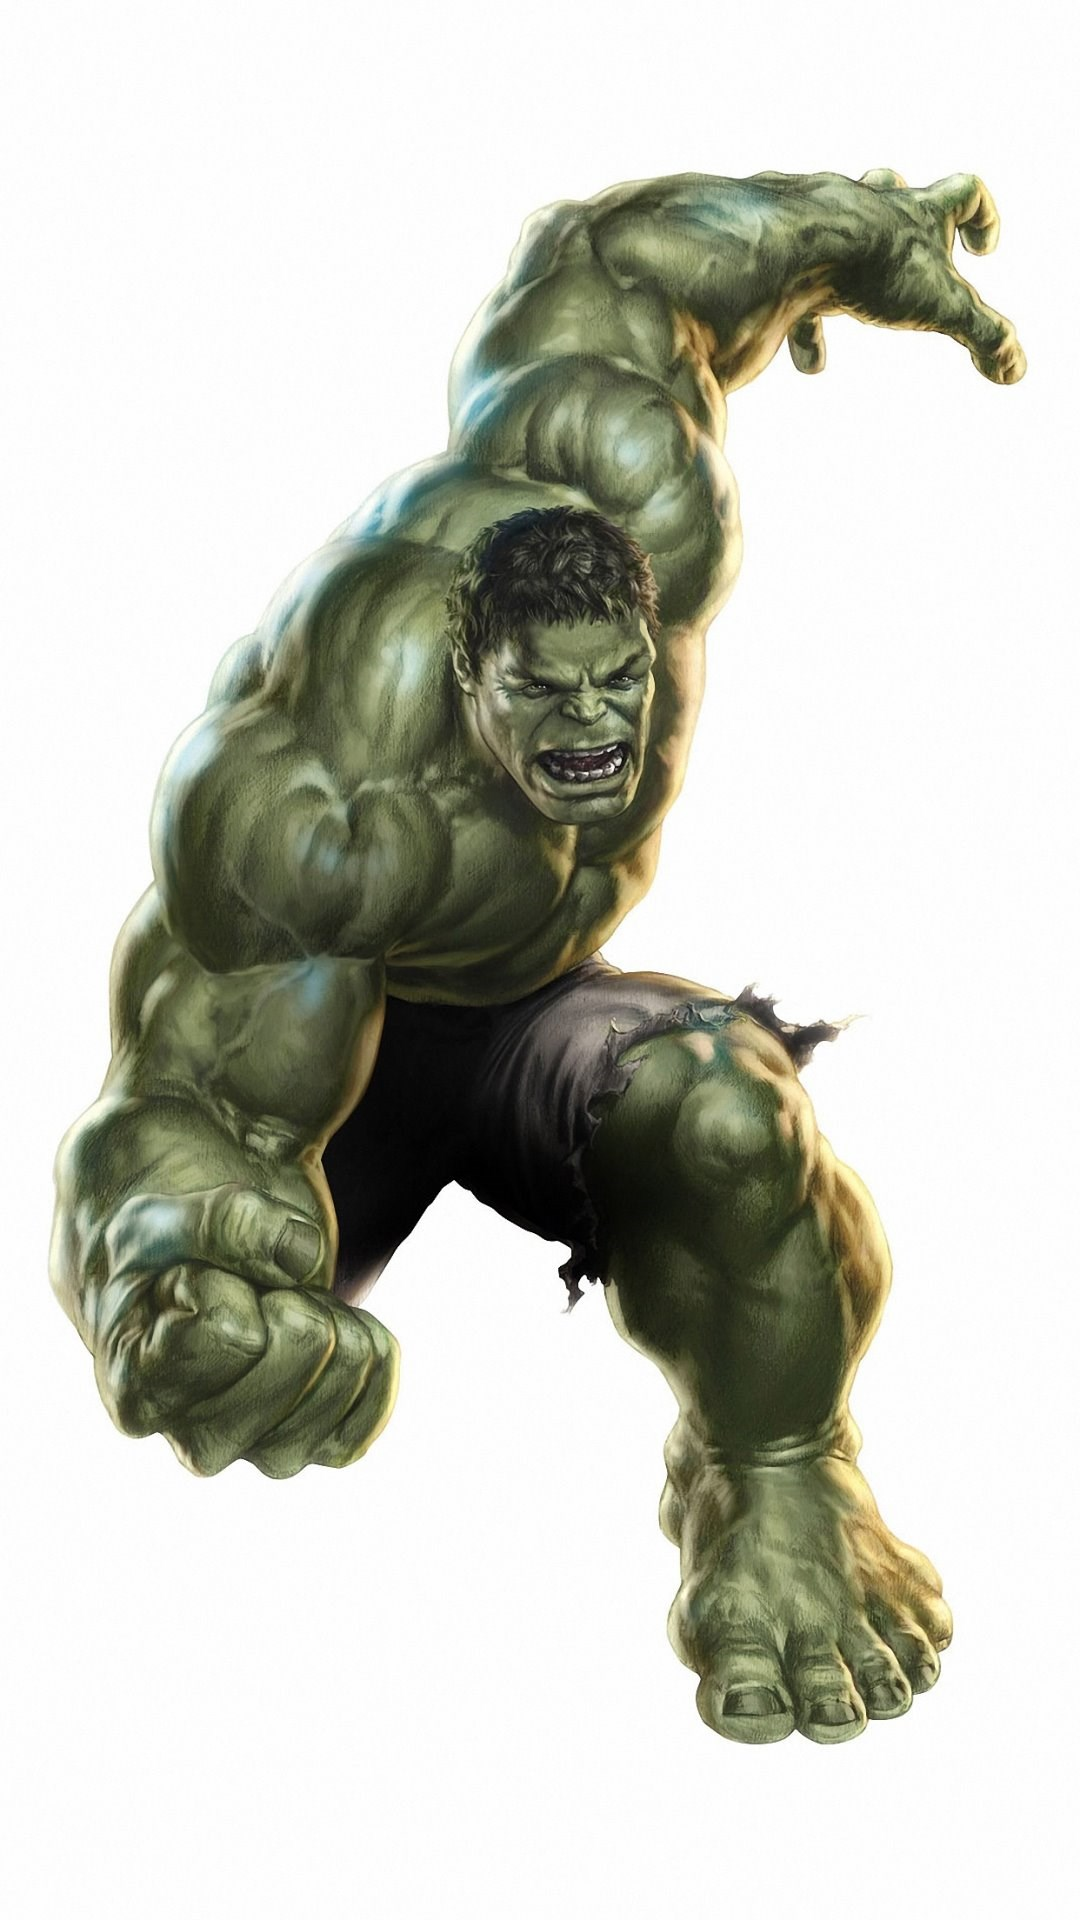 3d hulk iphone 6s wallpapers hd desktop background - Hulk hd images free download ...